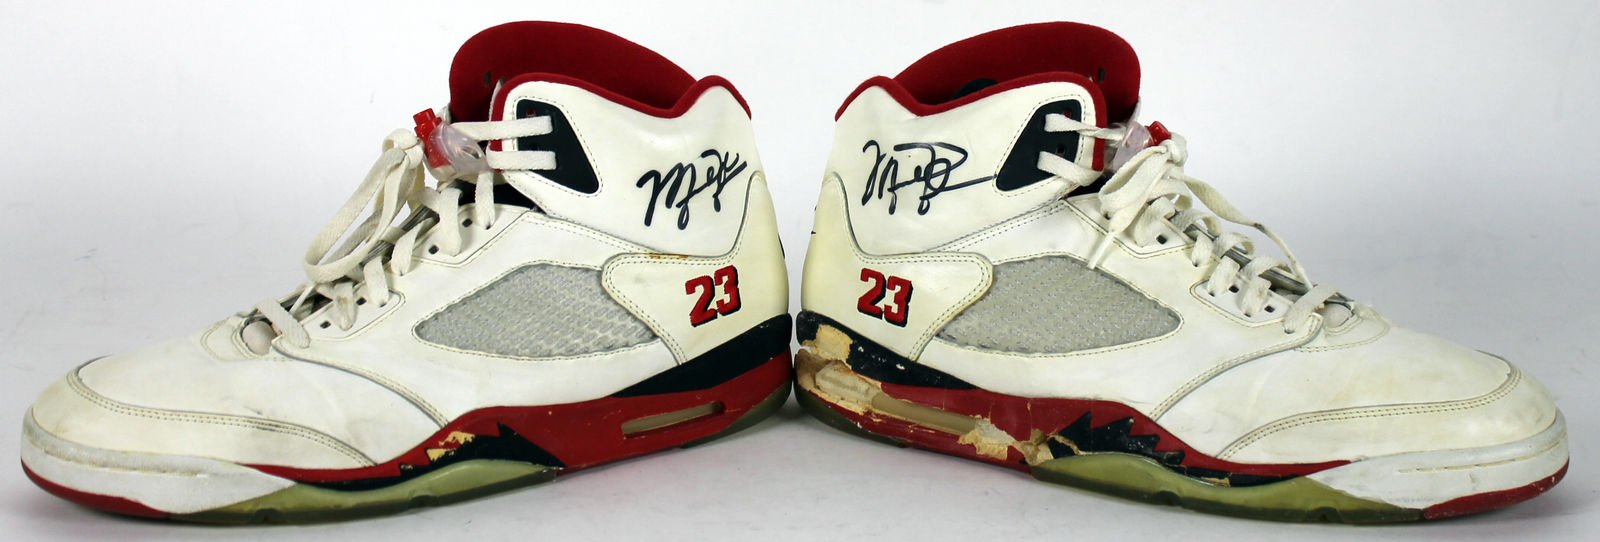 Bulls Michael Jordan Autographed Signed 1990 Game Used Nike Air Jordan V Shoes Bas Certified Authentic